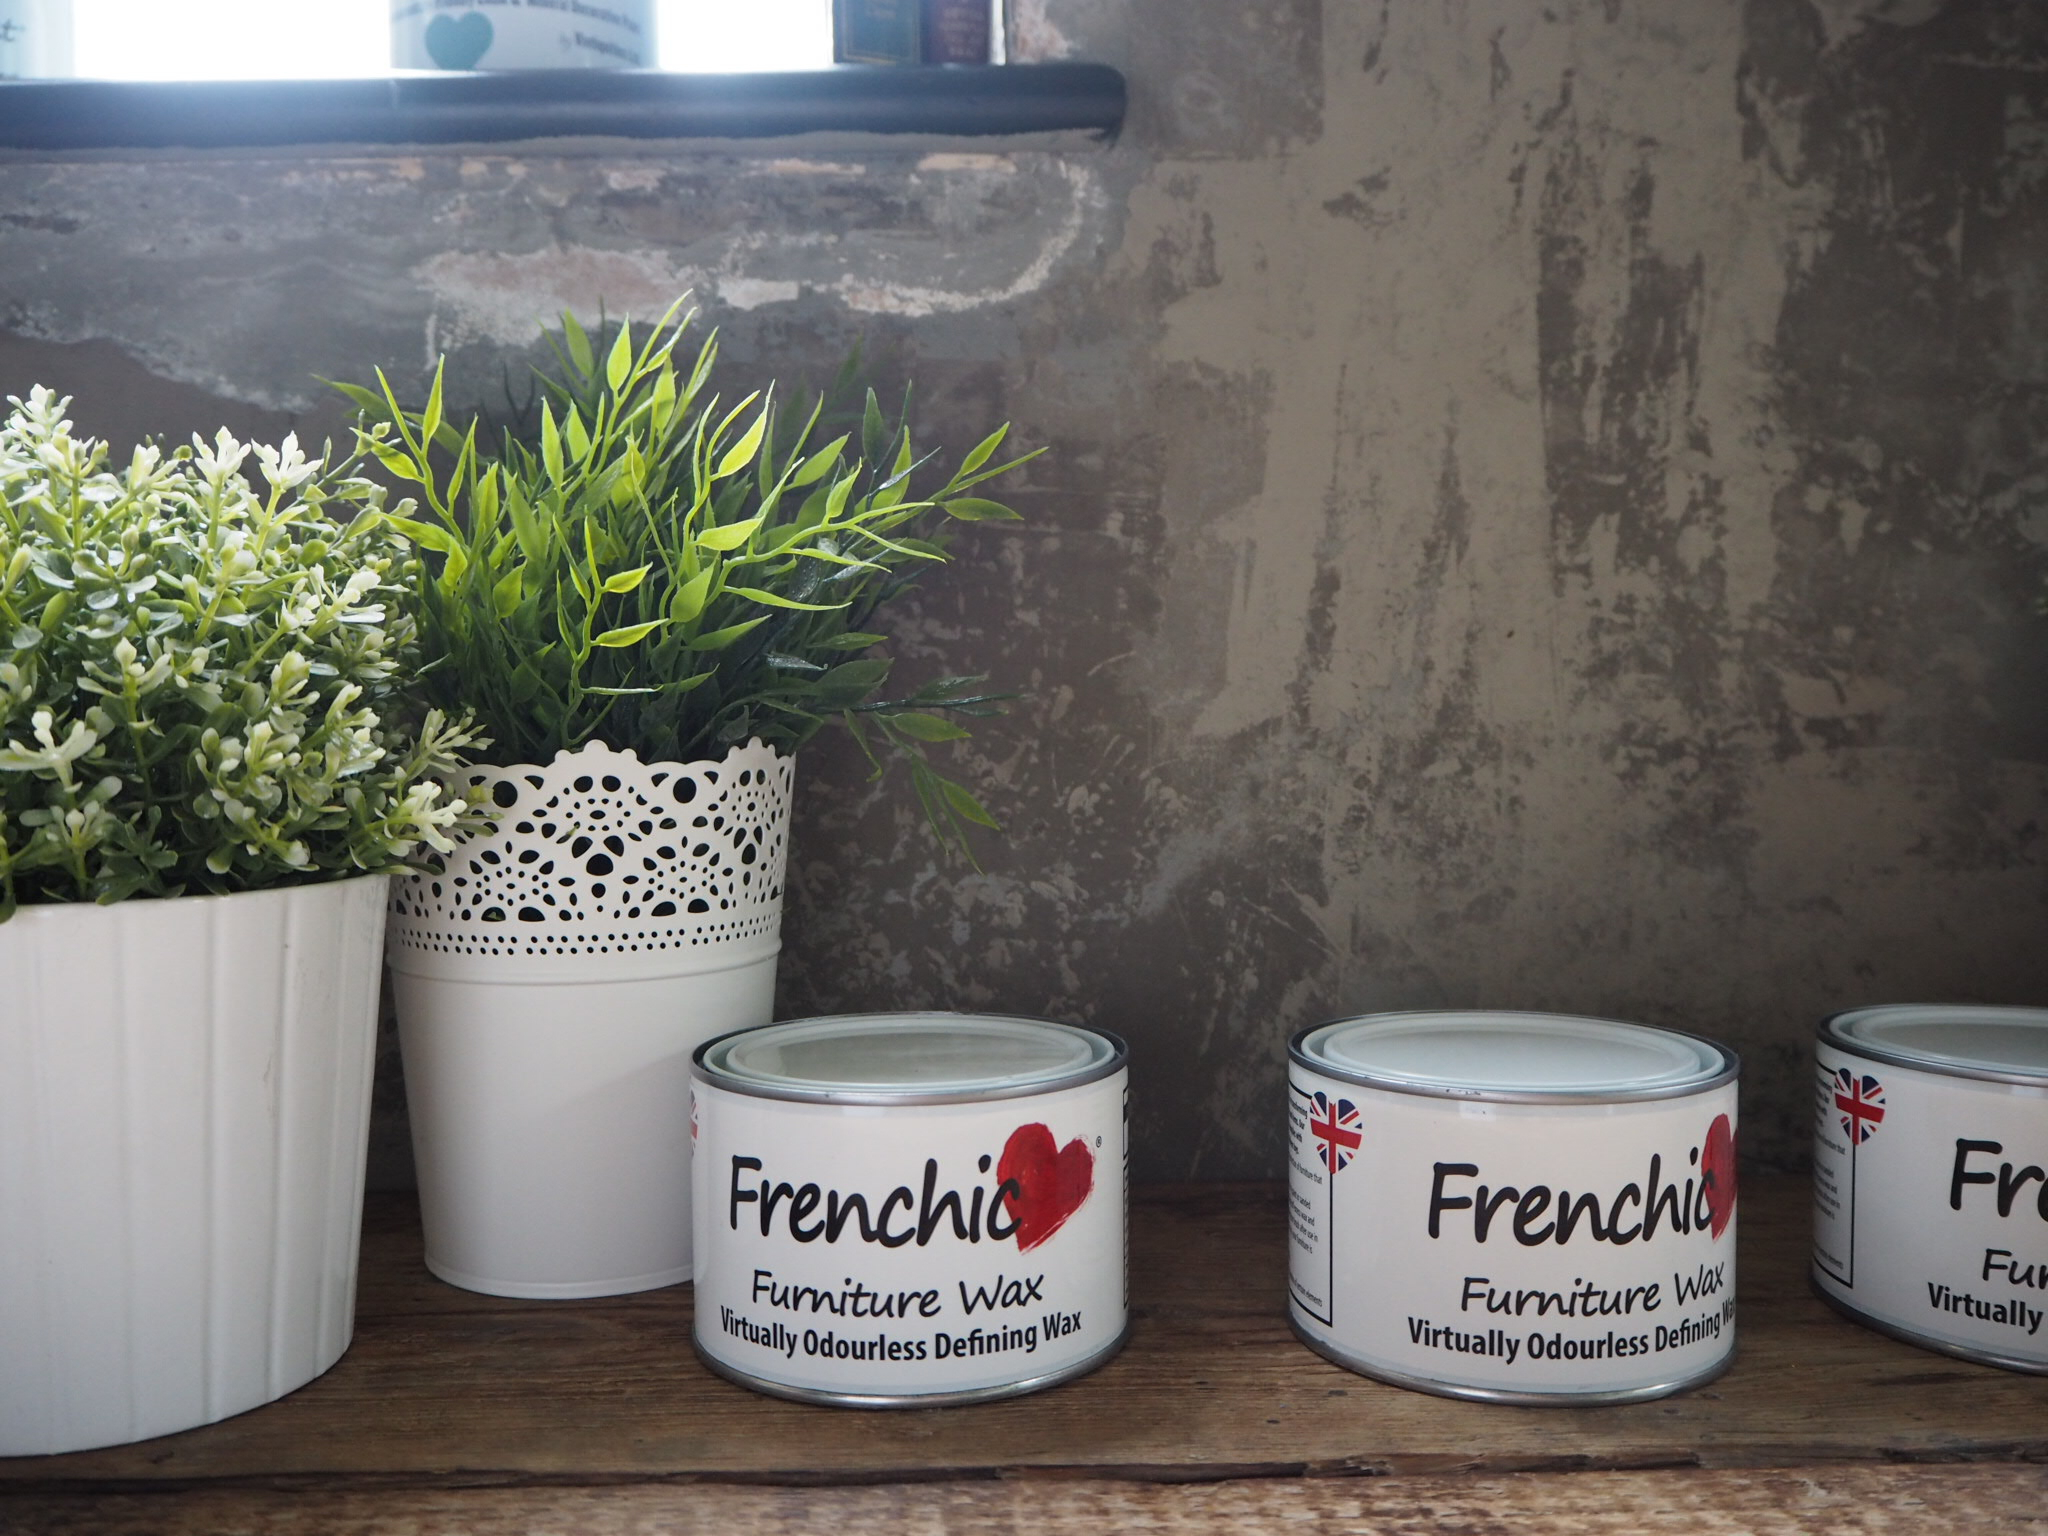 Defining wax, one of the many Frenchic products on display.